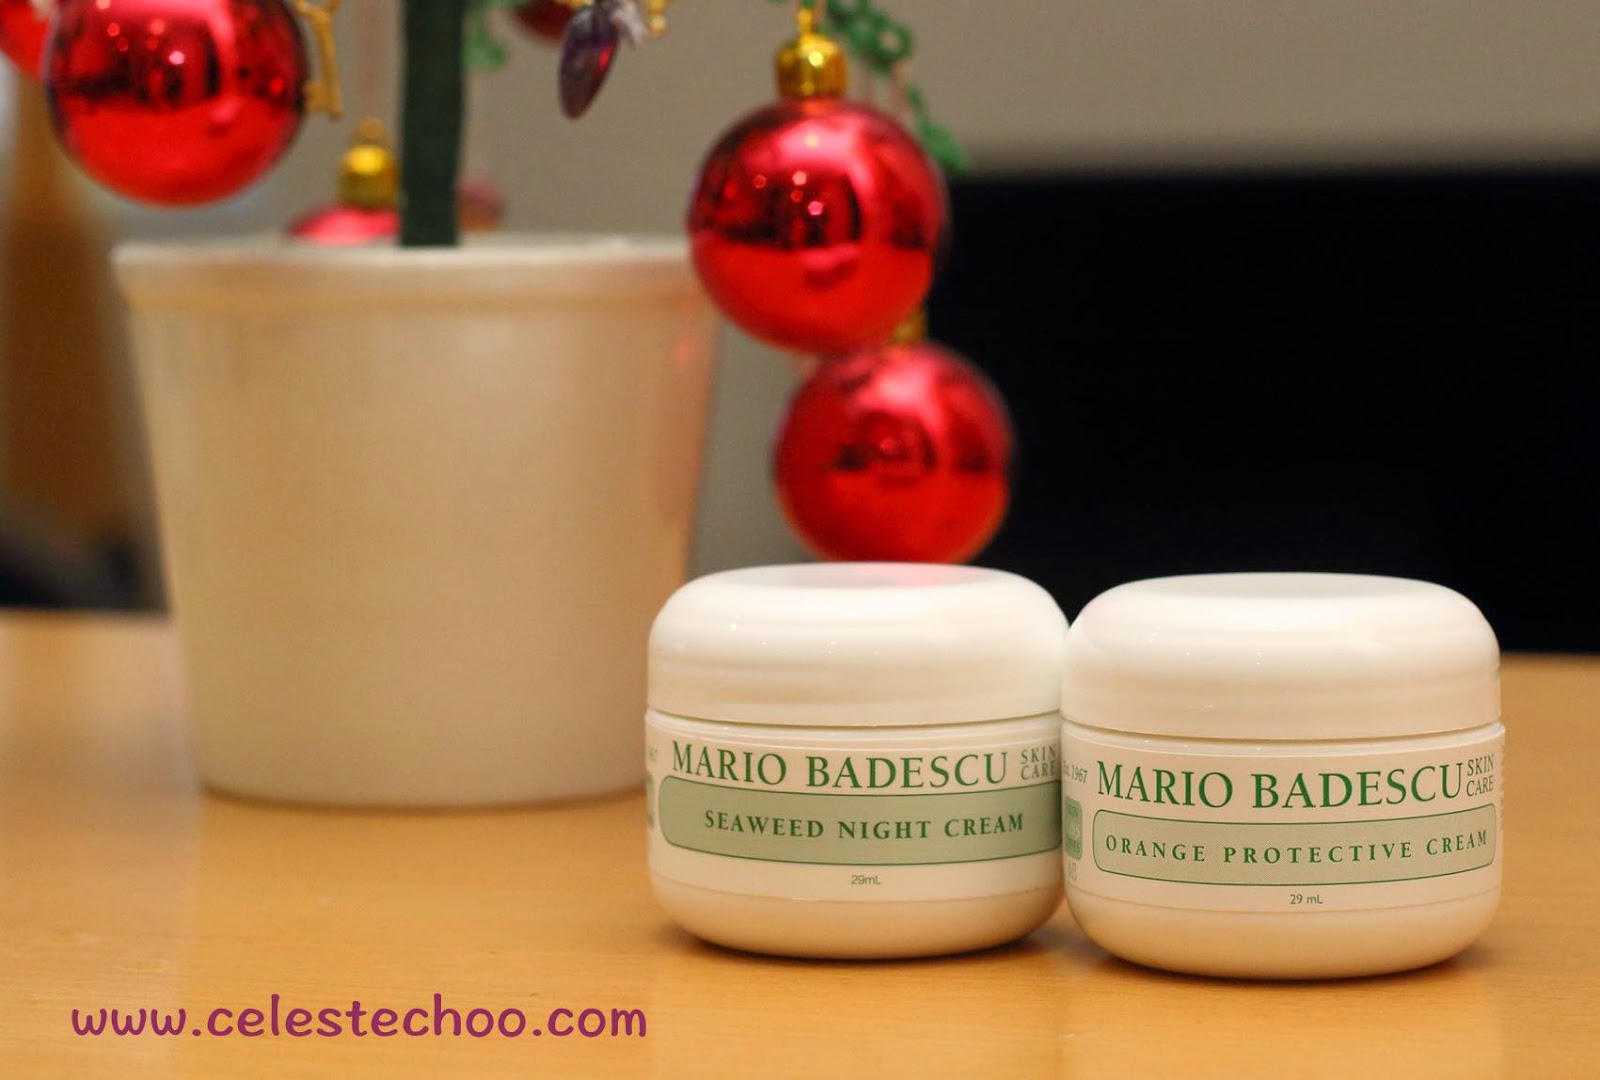 mario-badescu-skin-care-orange-protective-and-night-cream-product-review